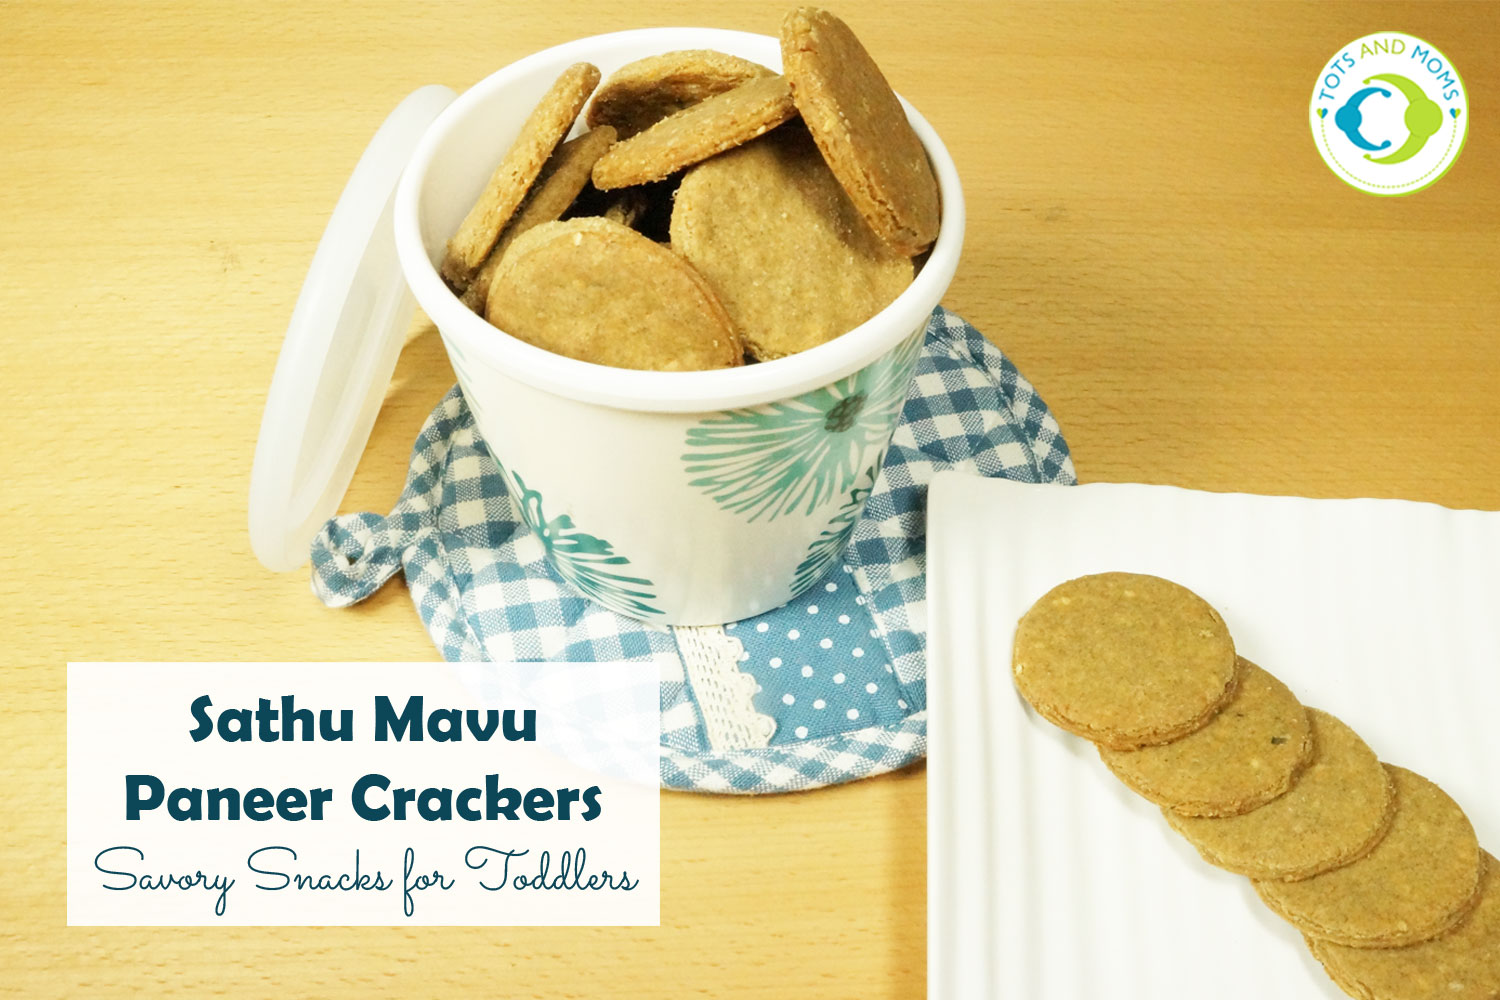 SATHUMAVU PANEER CRACKERS for Babies, Toddlers, kids & Family homemade cookies